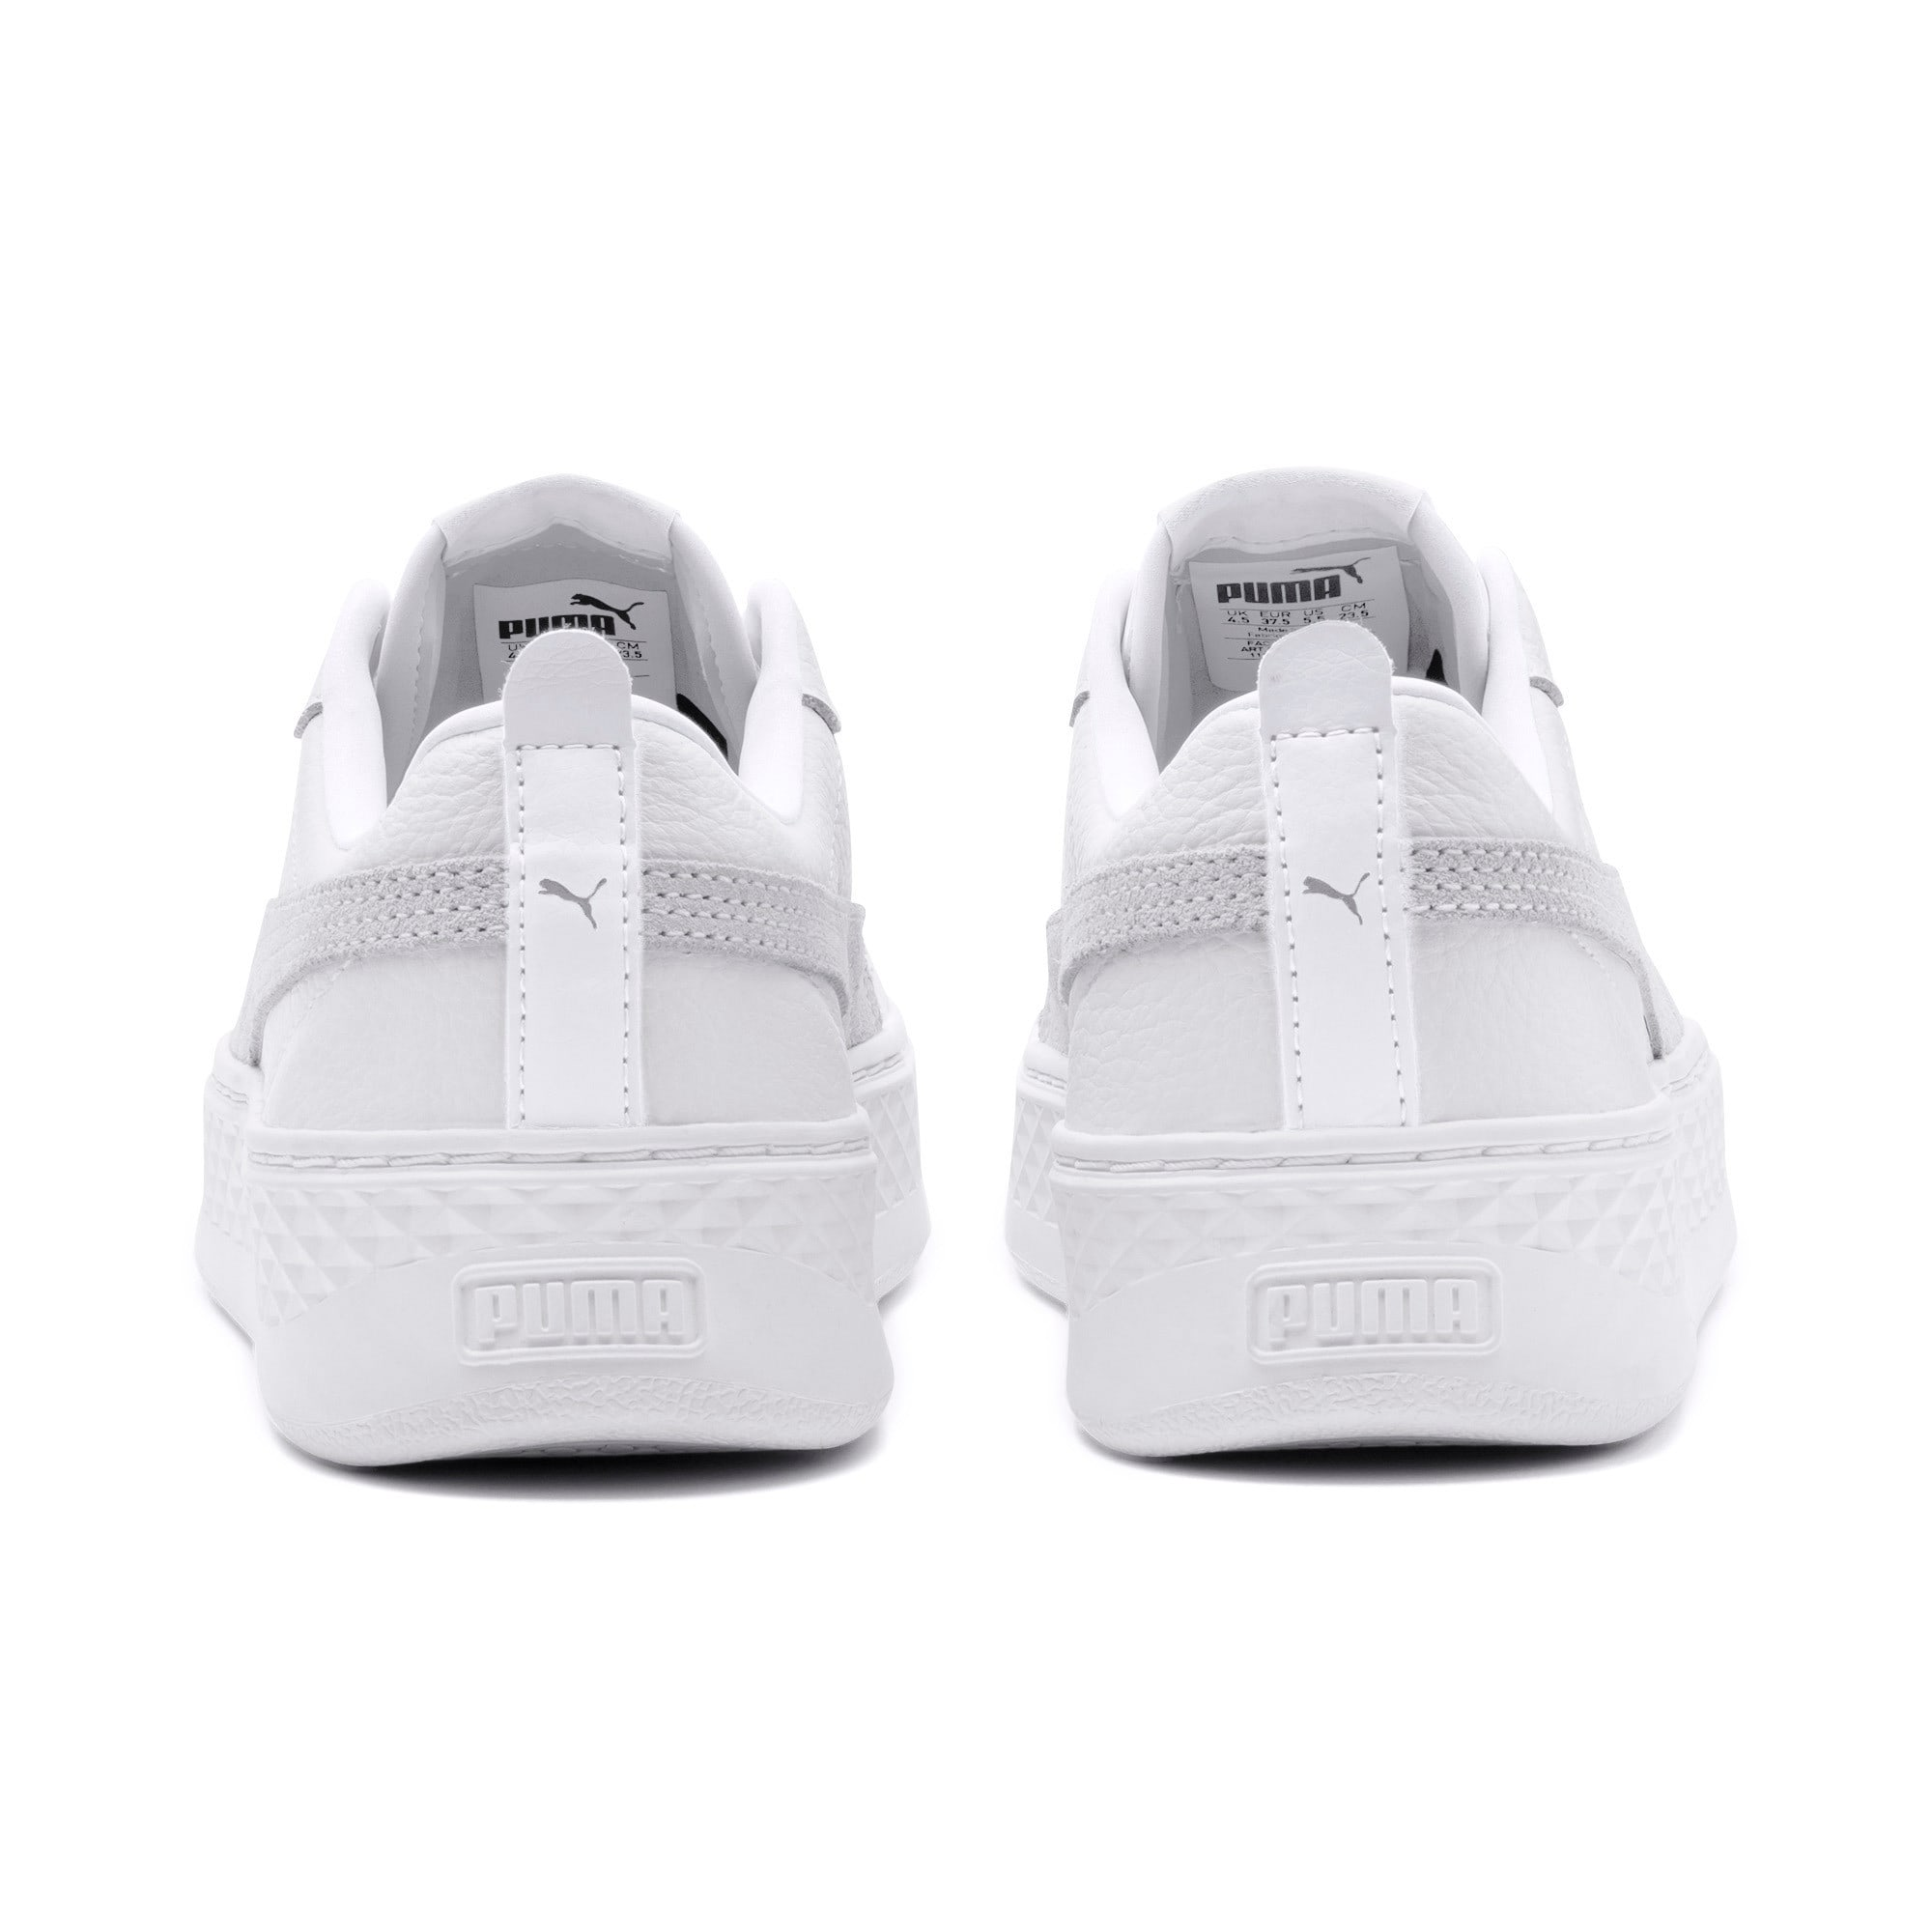 Thumbnail 3 of Puma Smash Platform L, Puma White-Puma White-White, medium